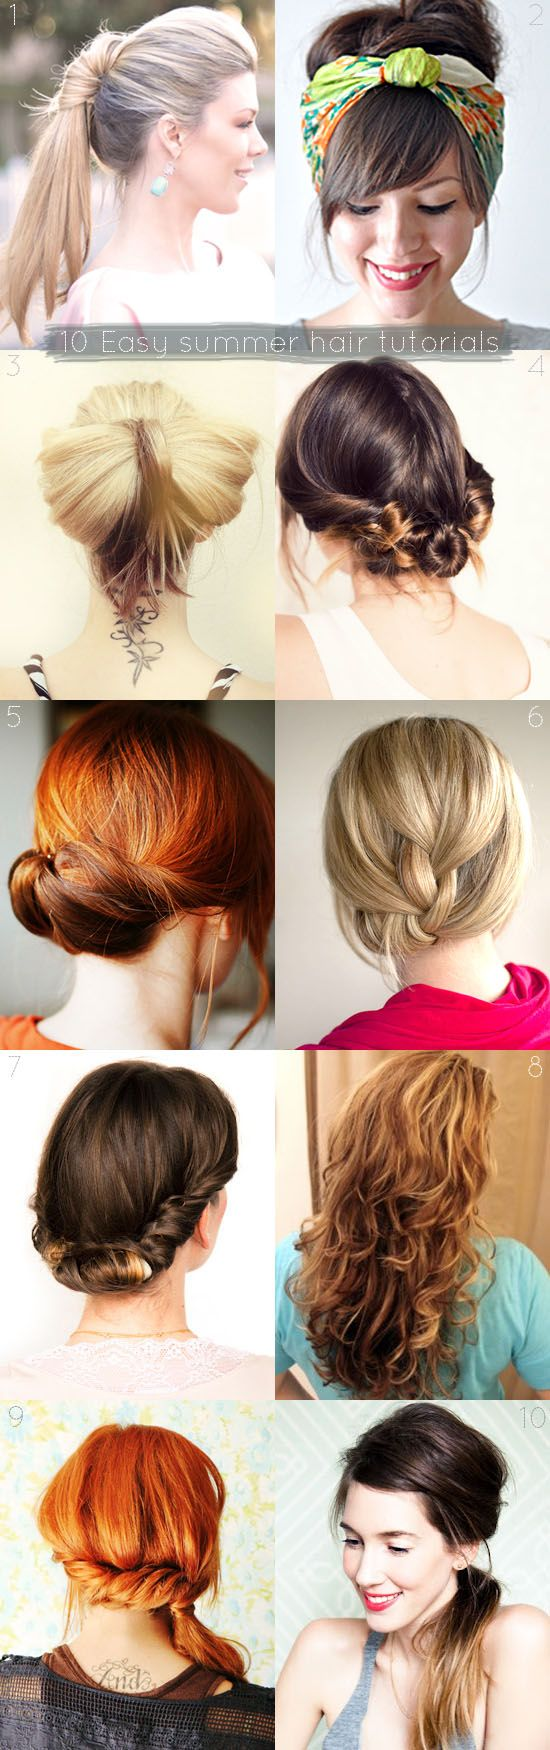 10 Quick and Easy Hair Tutorials